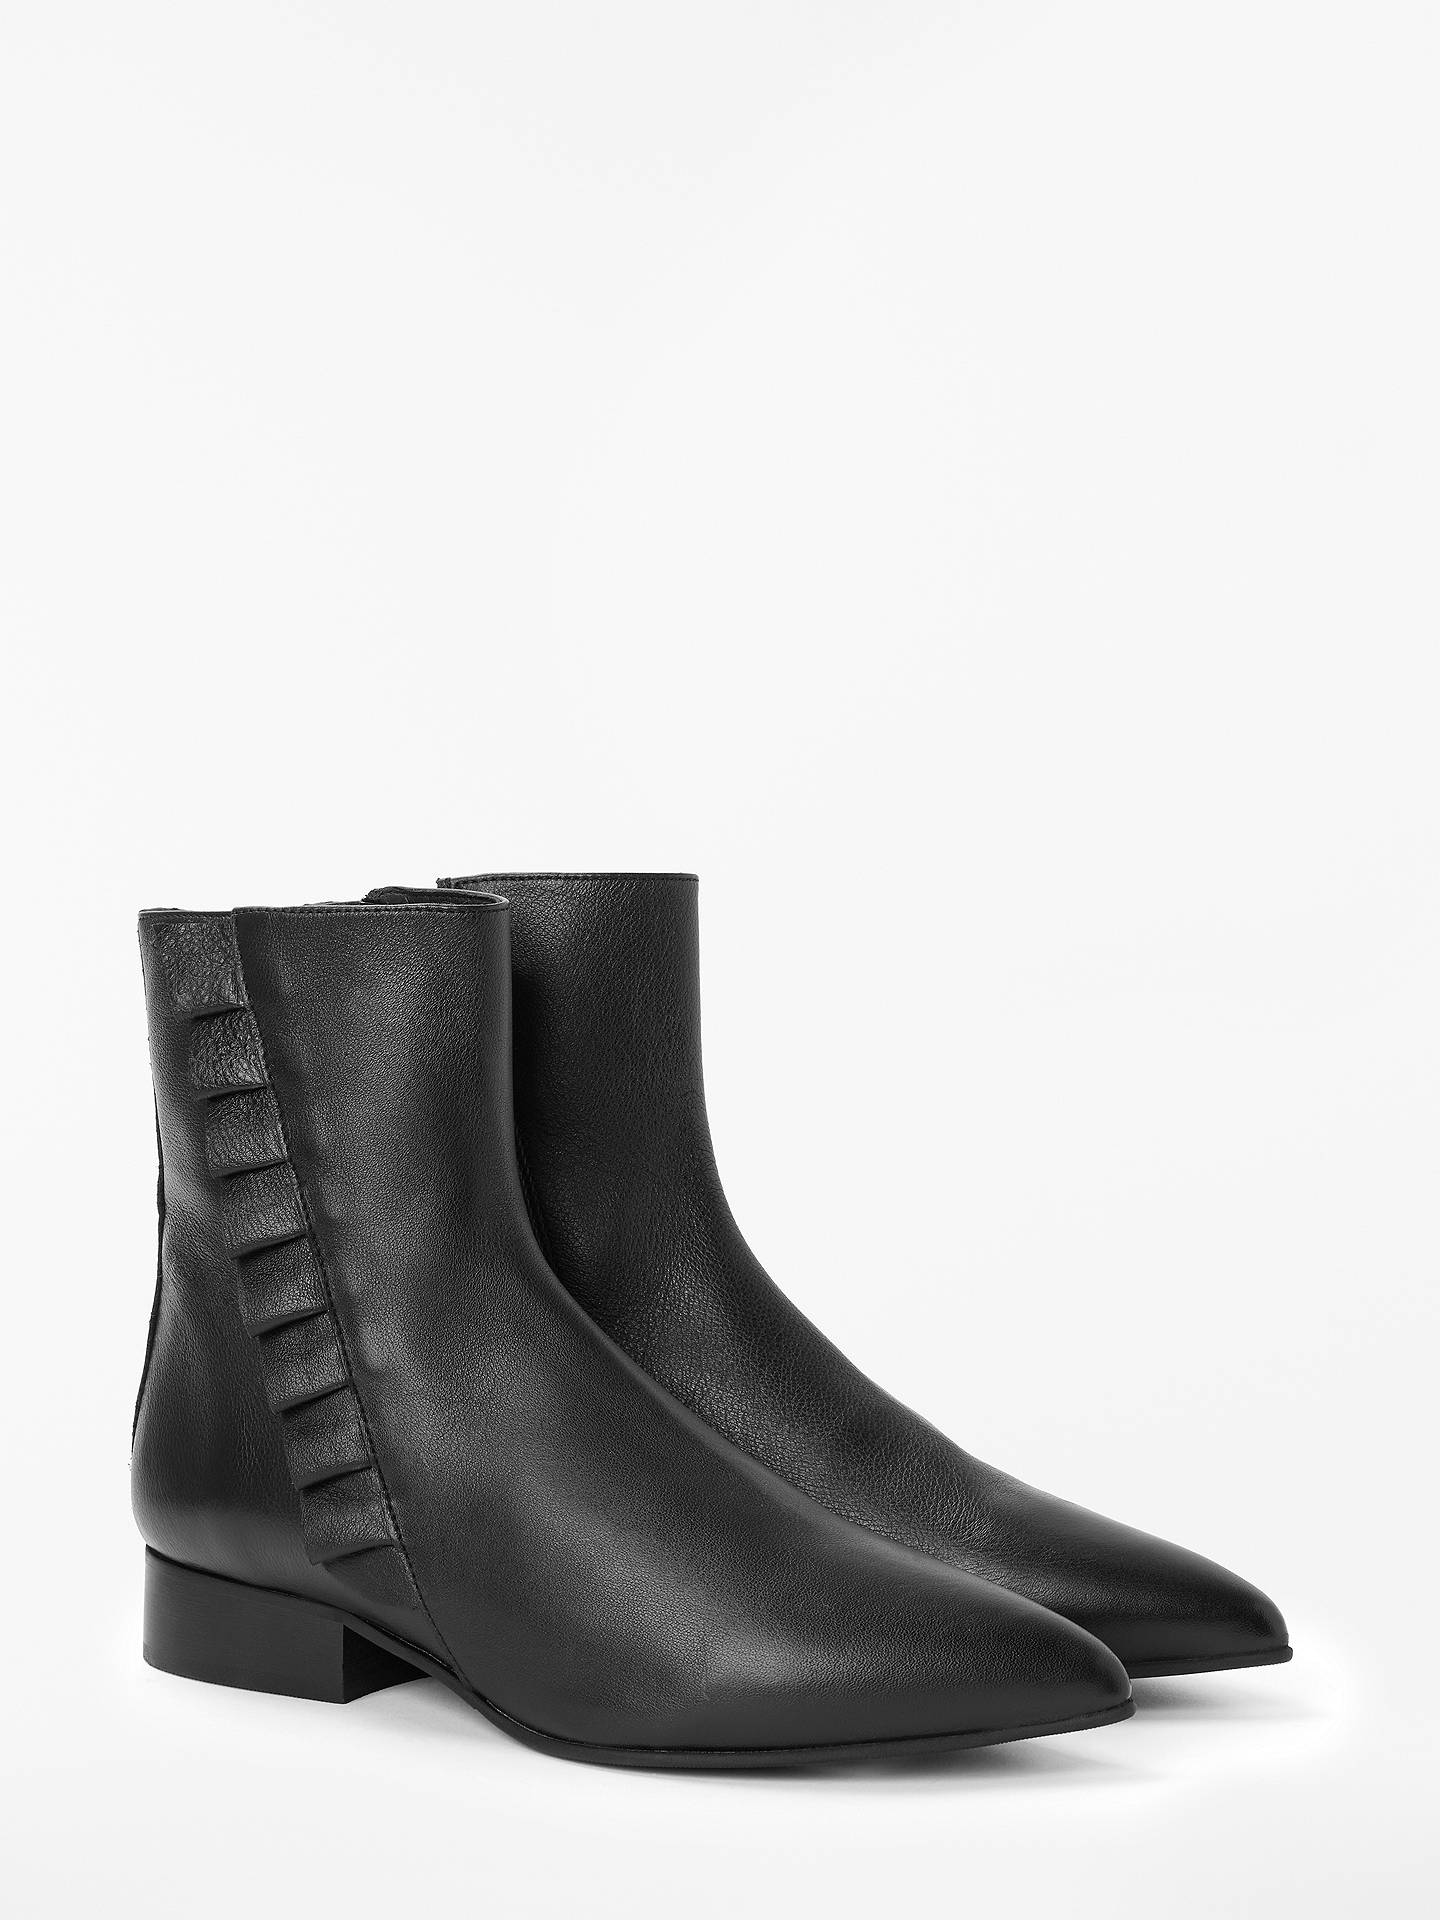 BuySelected Femme Alexia Leather Frill Ankle Boots, Black, 4 Online at johnlewis.com